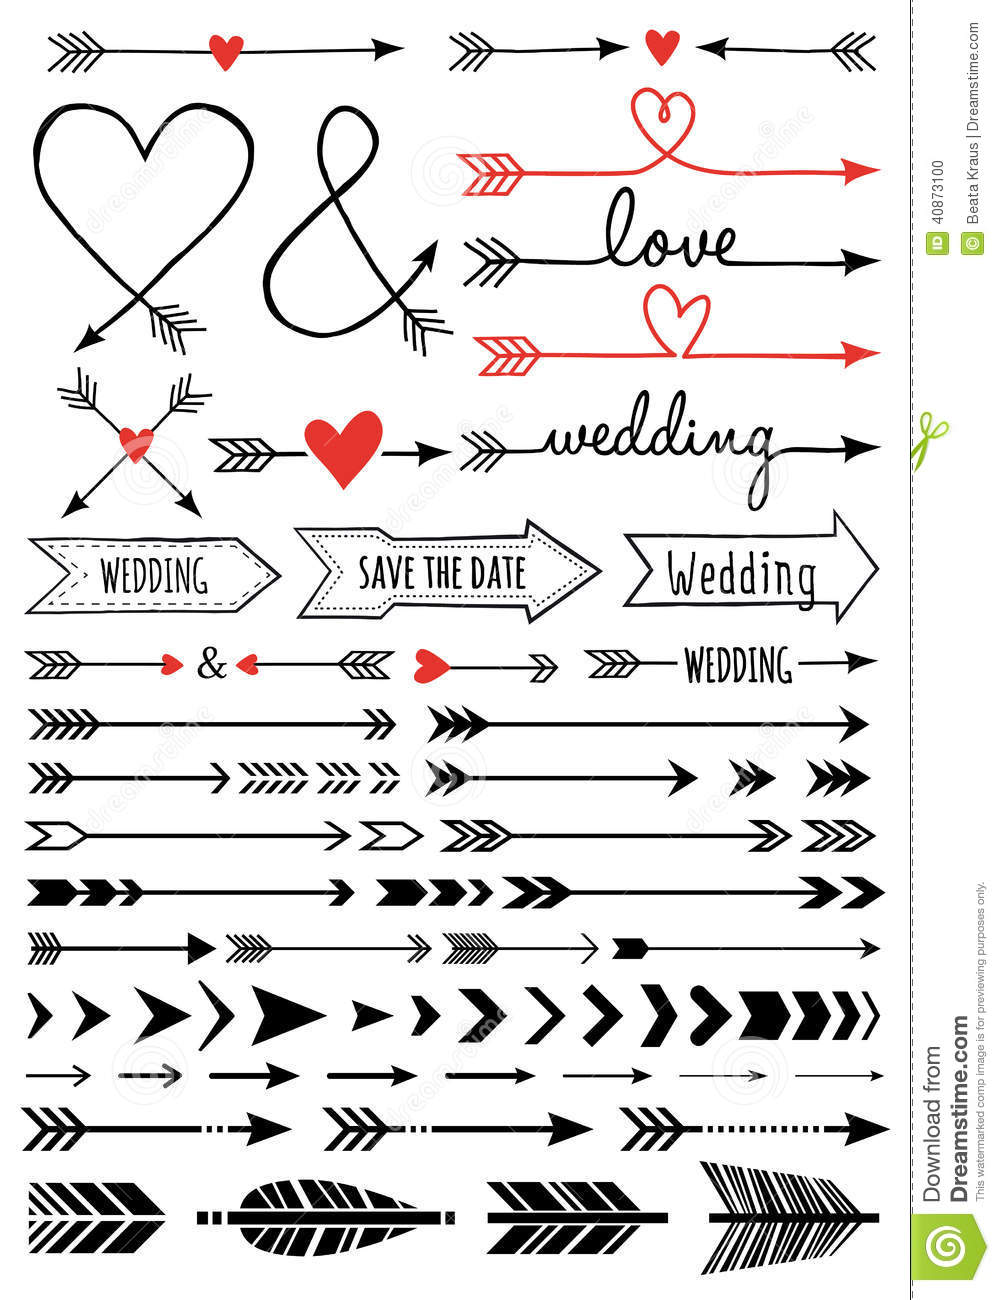 Free drawn arrow clipart banner library Hand-drawn Arrows, Set Stock Illustration - Image: 40873100 banner library